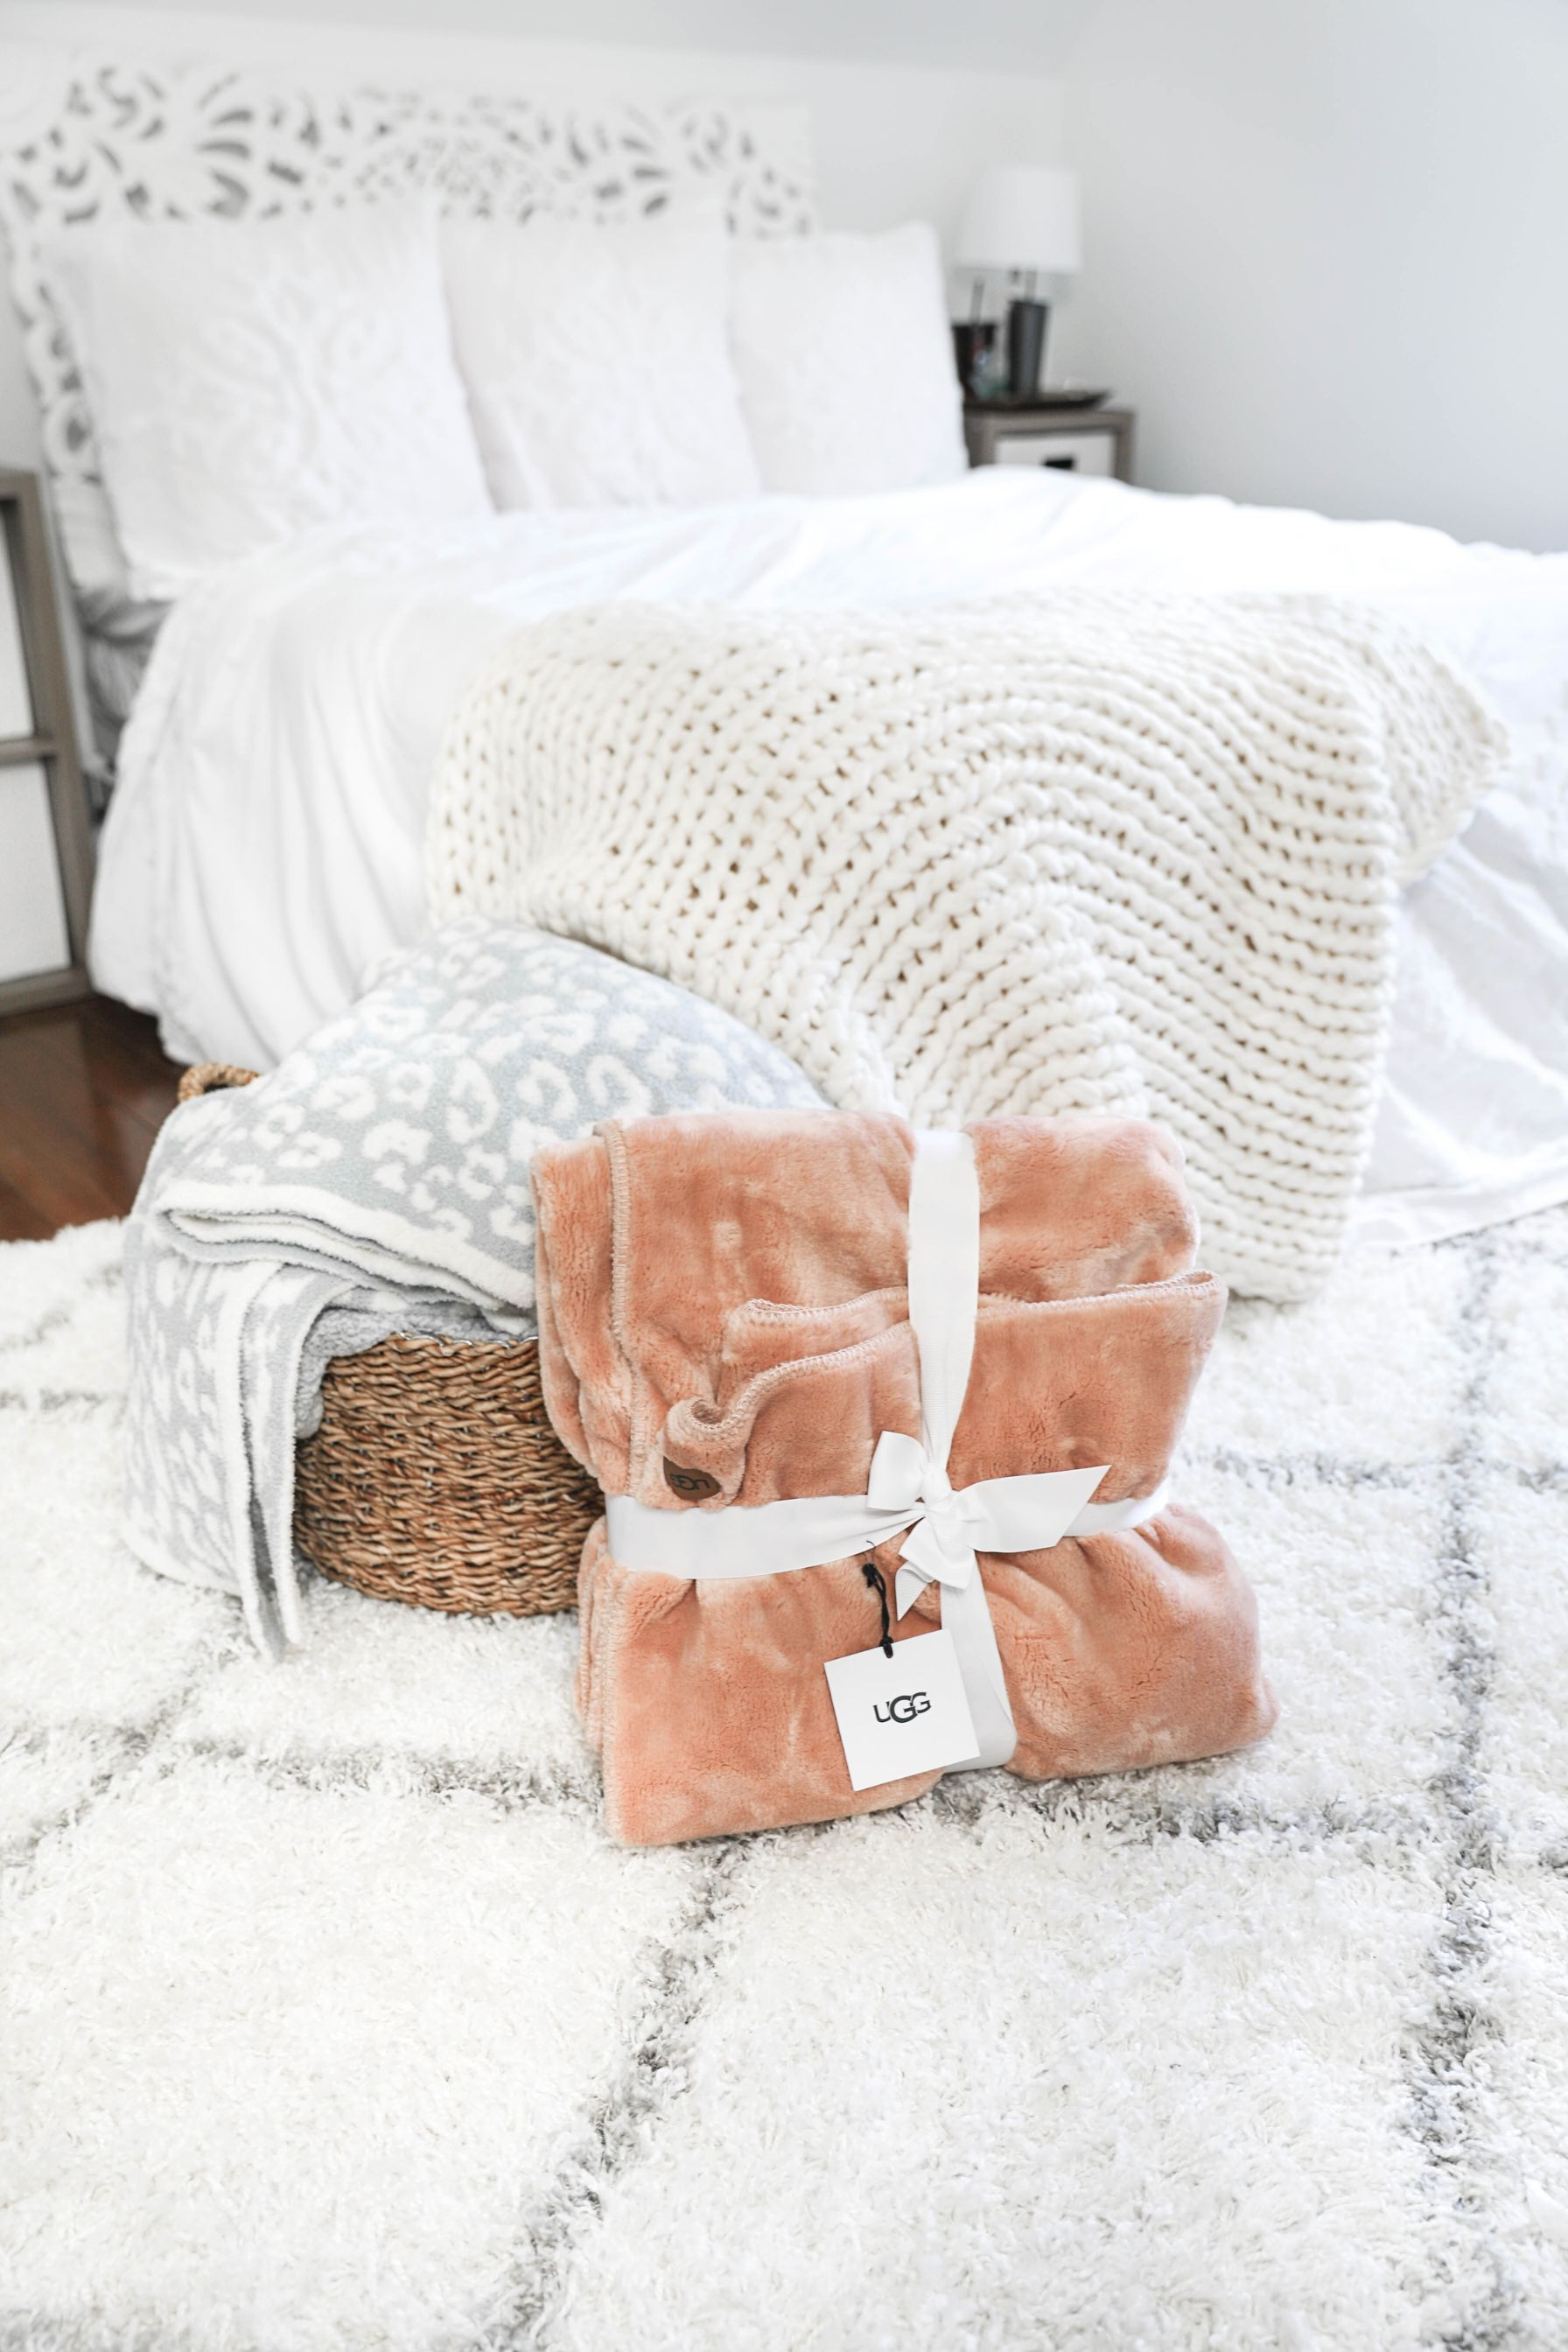 Nordstrom anniversary sale home decor roundup! How cute is this UGG blanket? It is SO soft! Checkout of all my favorites rounded up on fashion blog daily dose of charm by lauren lindmark